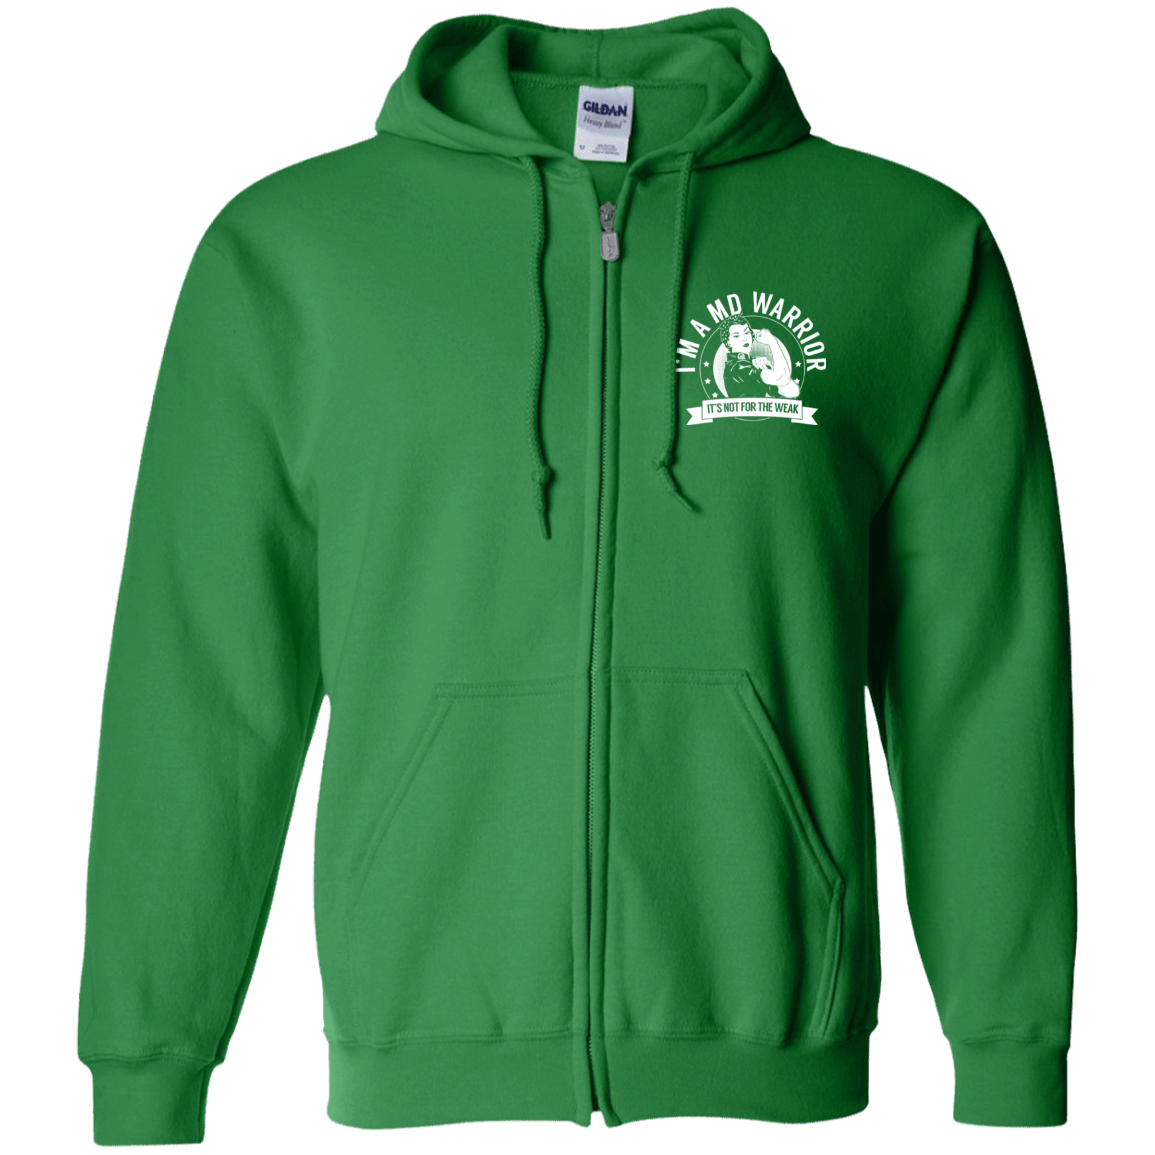 Muscular Dystrophy - MD Warrior NFTW Zip Up Hooded Sweatshirt - The Unchargeables